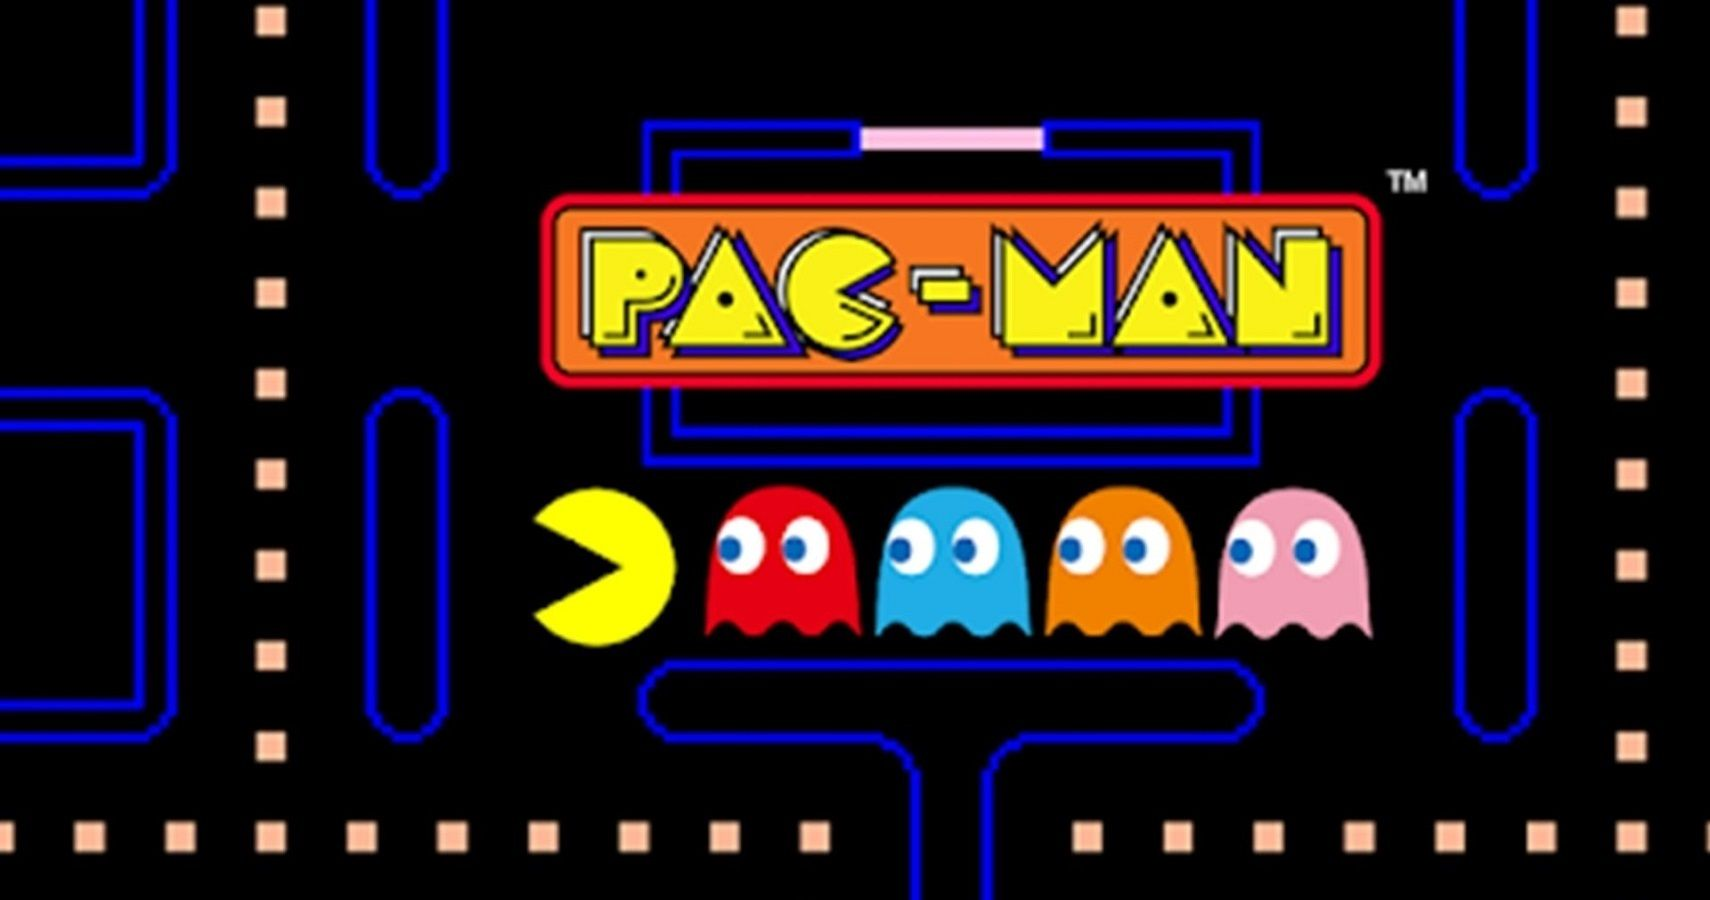 The Pac-Man Death Sound Is The Most Musical Noise In Gaming